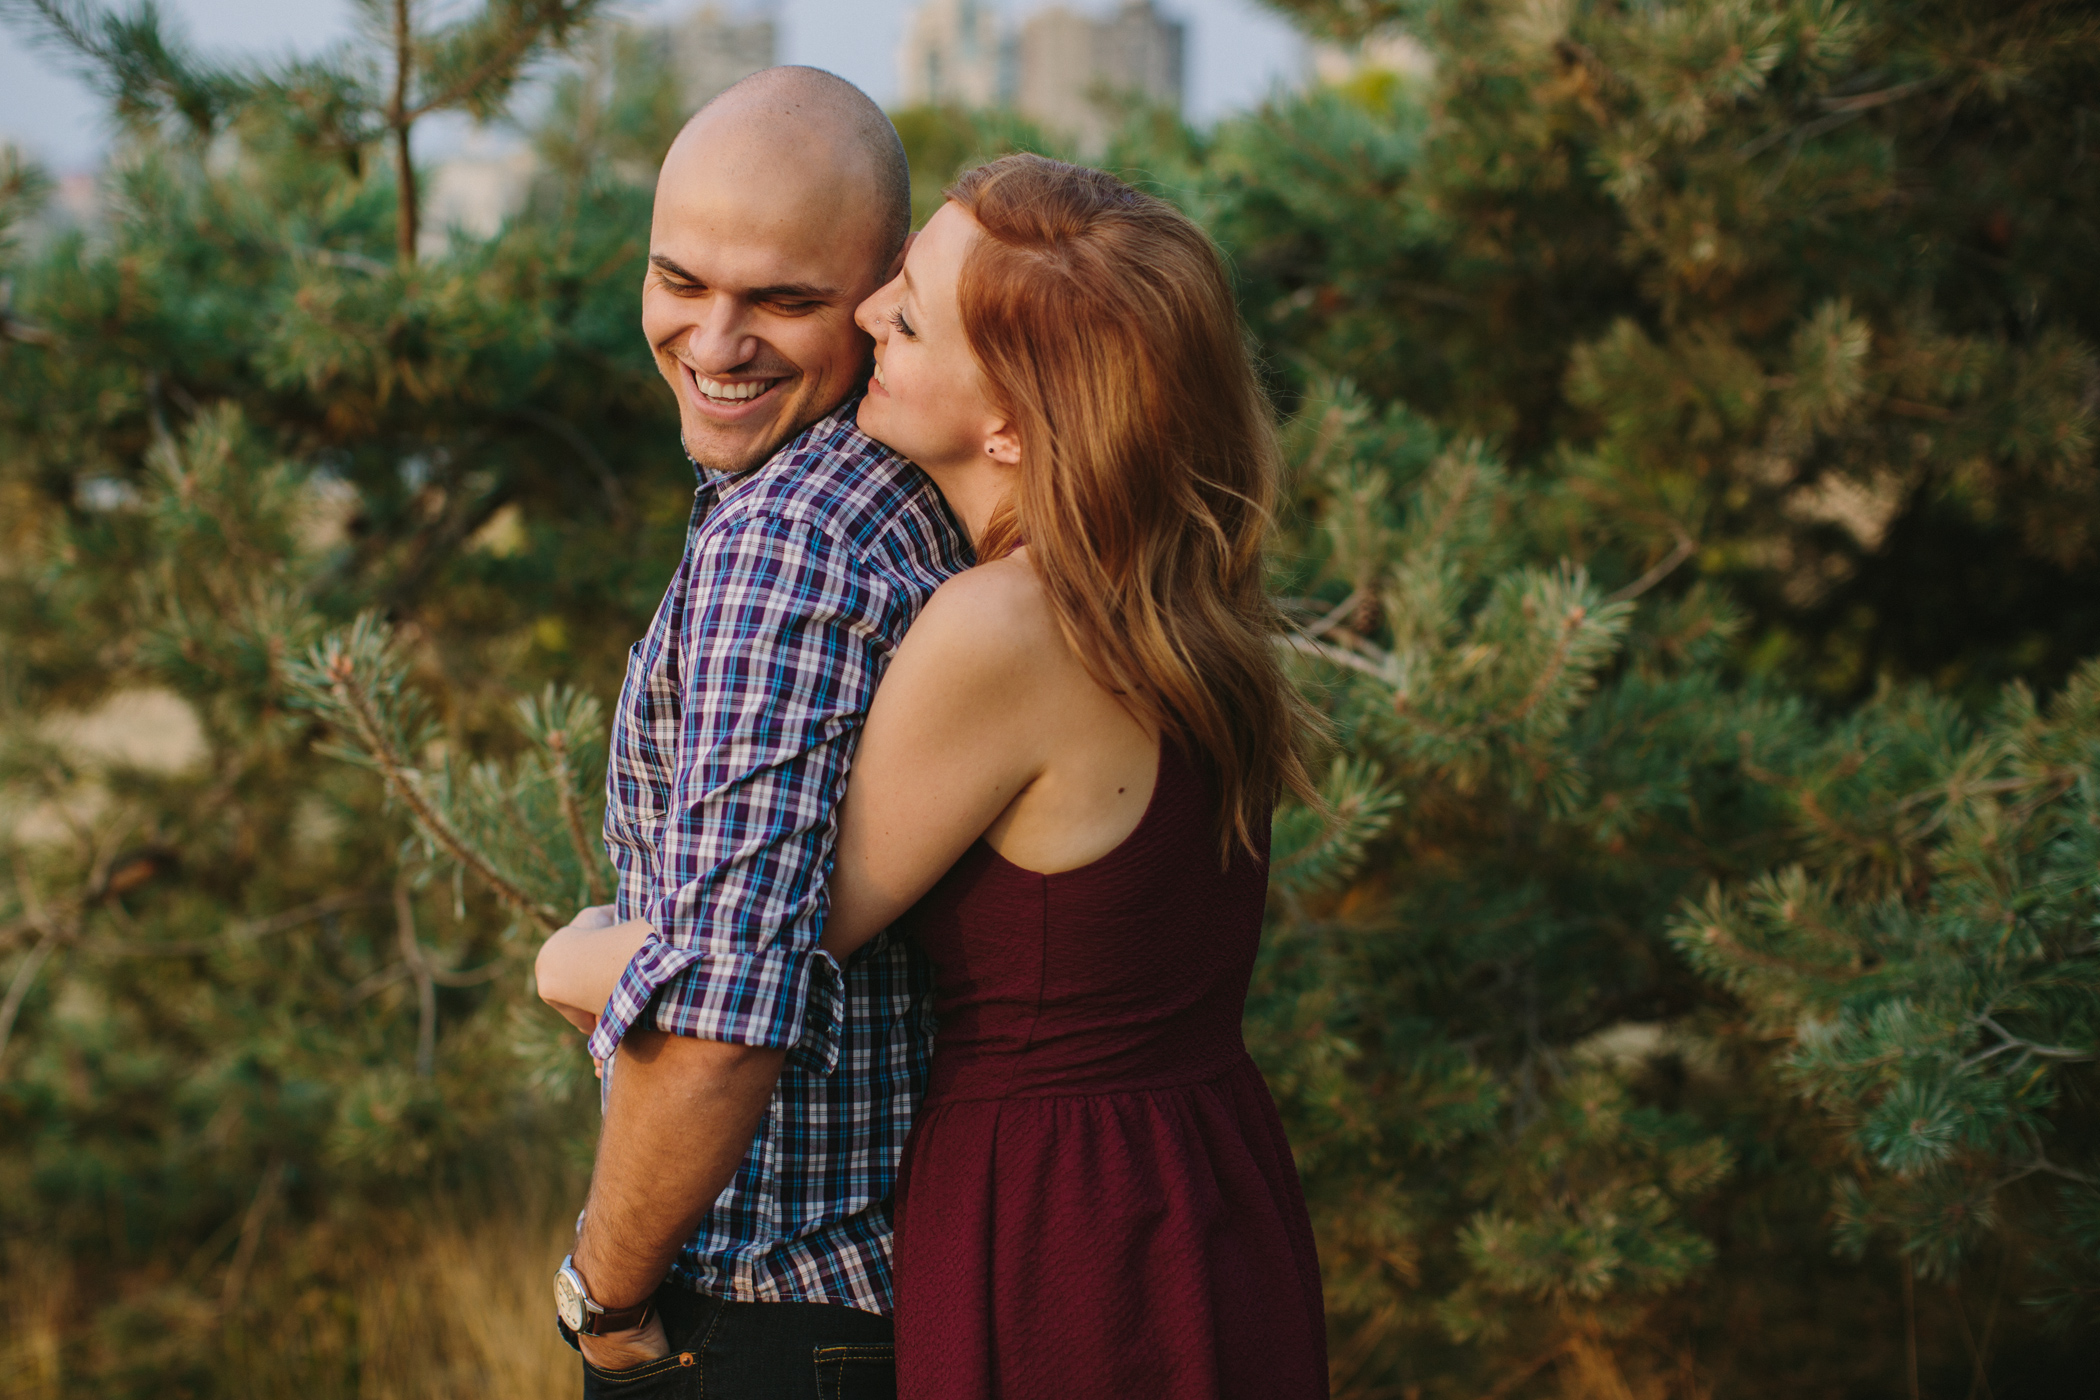 Vanier Park Engagement Session